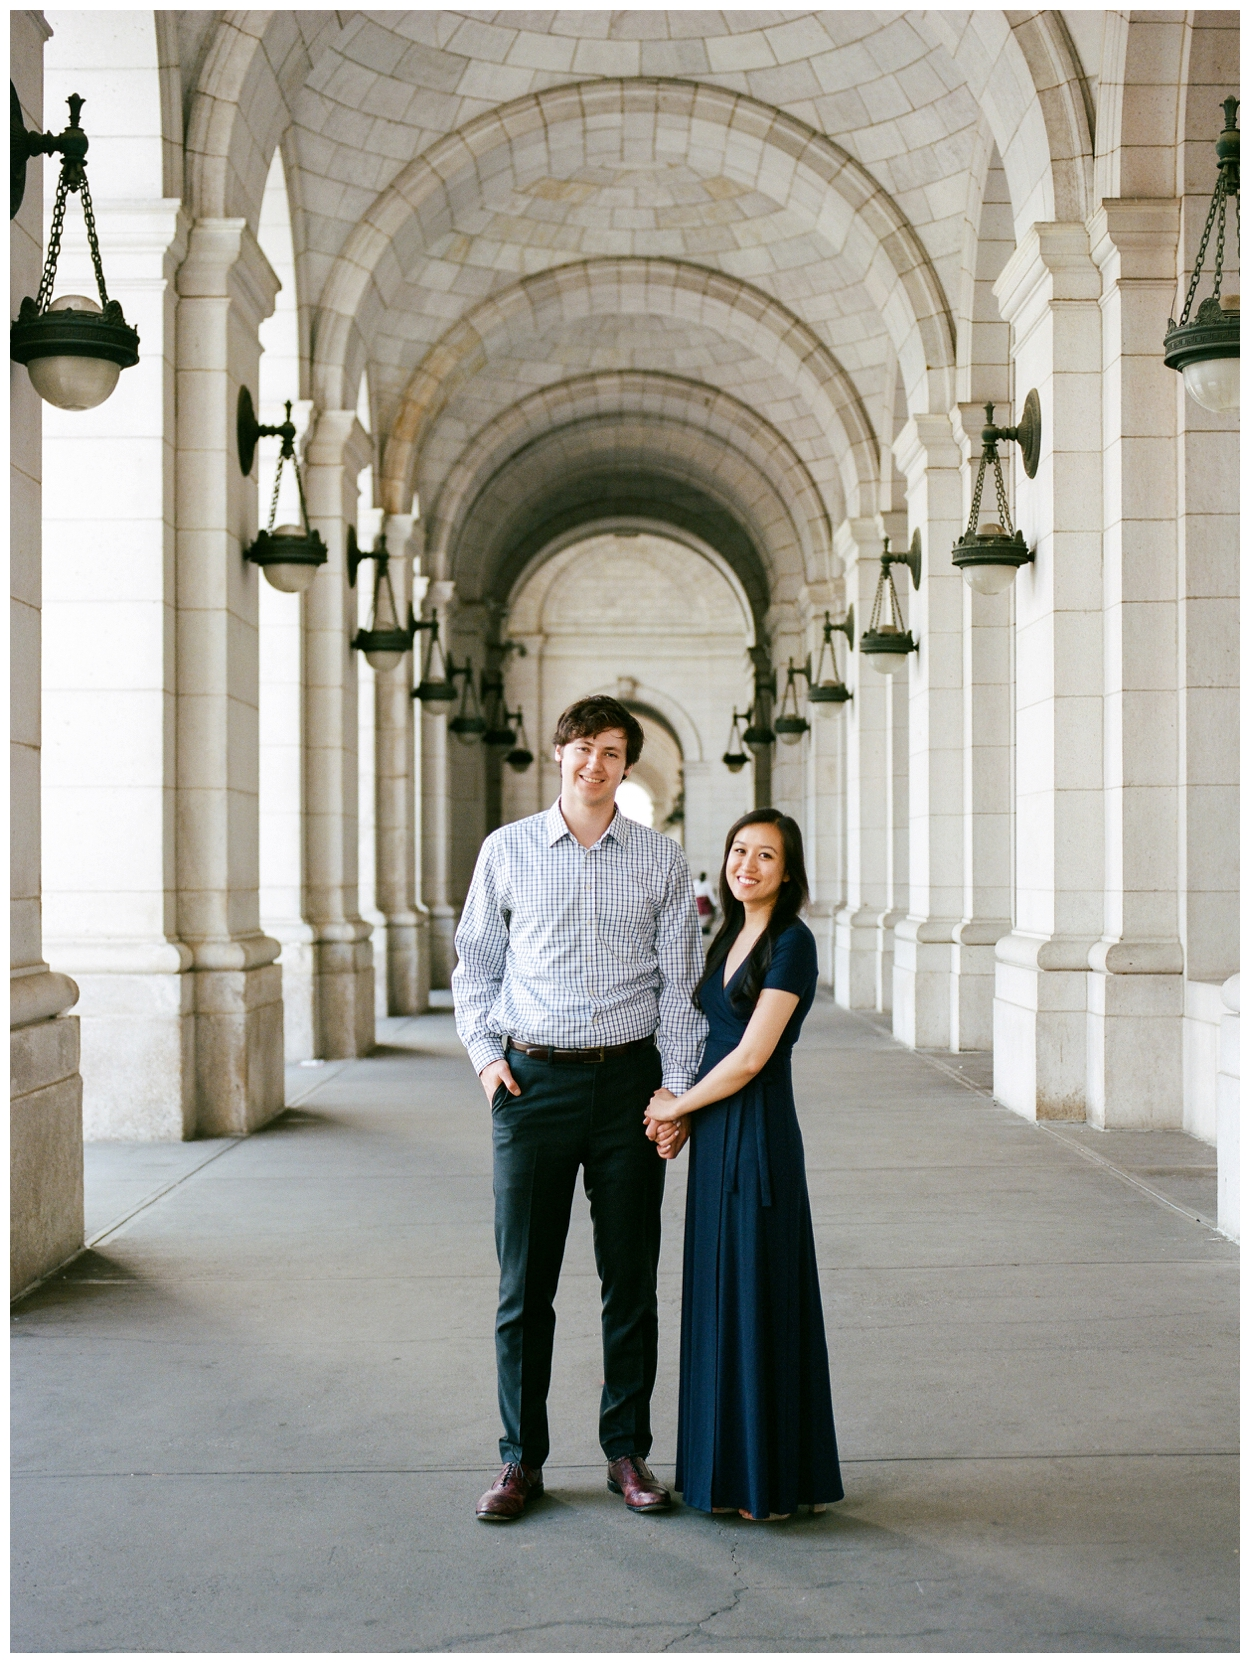 Sweet engagement session at Union Station in Washington DC by fine art wedding photographer Lissa Ryan Photography